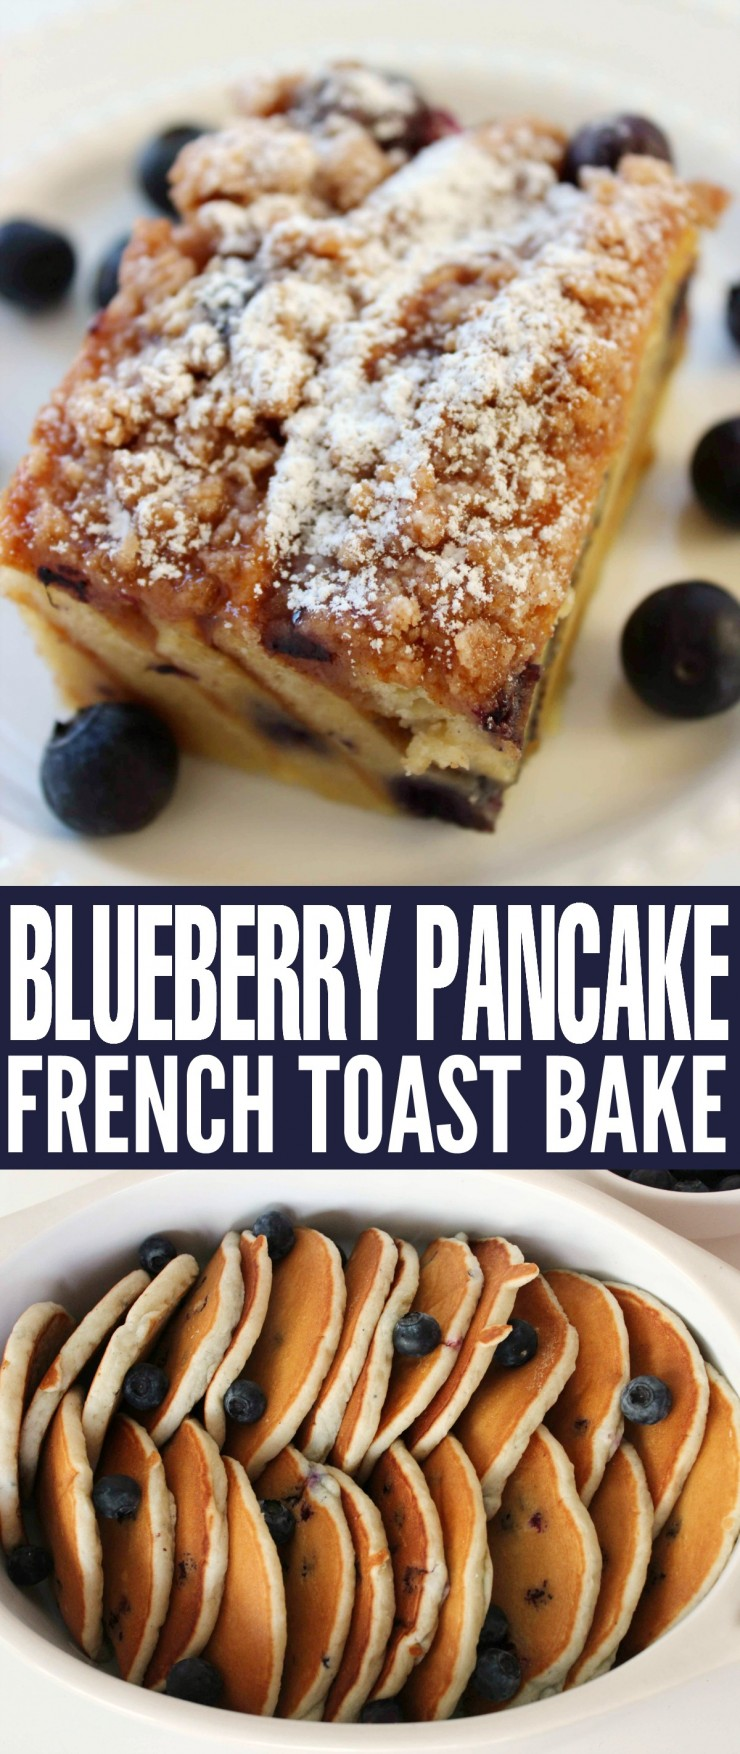 Looking for a great new breakfast recipe?  Check out this sumptuous Blueberry Pancake French Toast Bake!  Pancakes, a French Toast Mixture, Blueberries and a delicious crumble topping.  You could even eat this as dessert, it is that good!